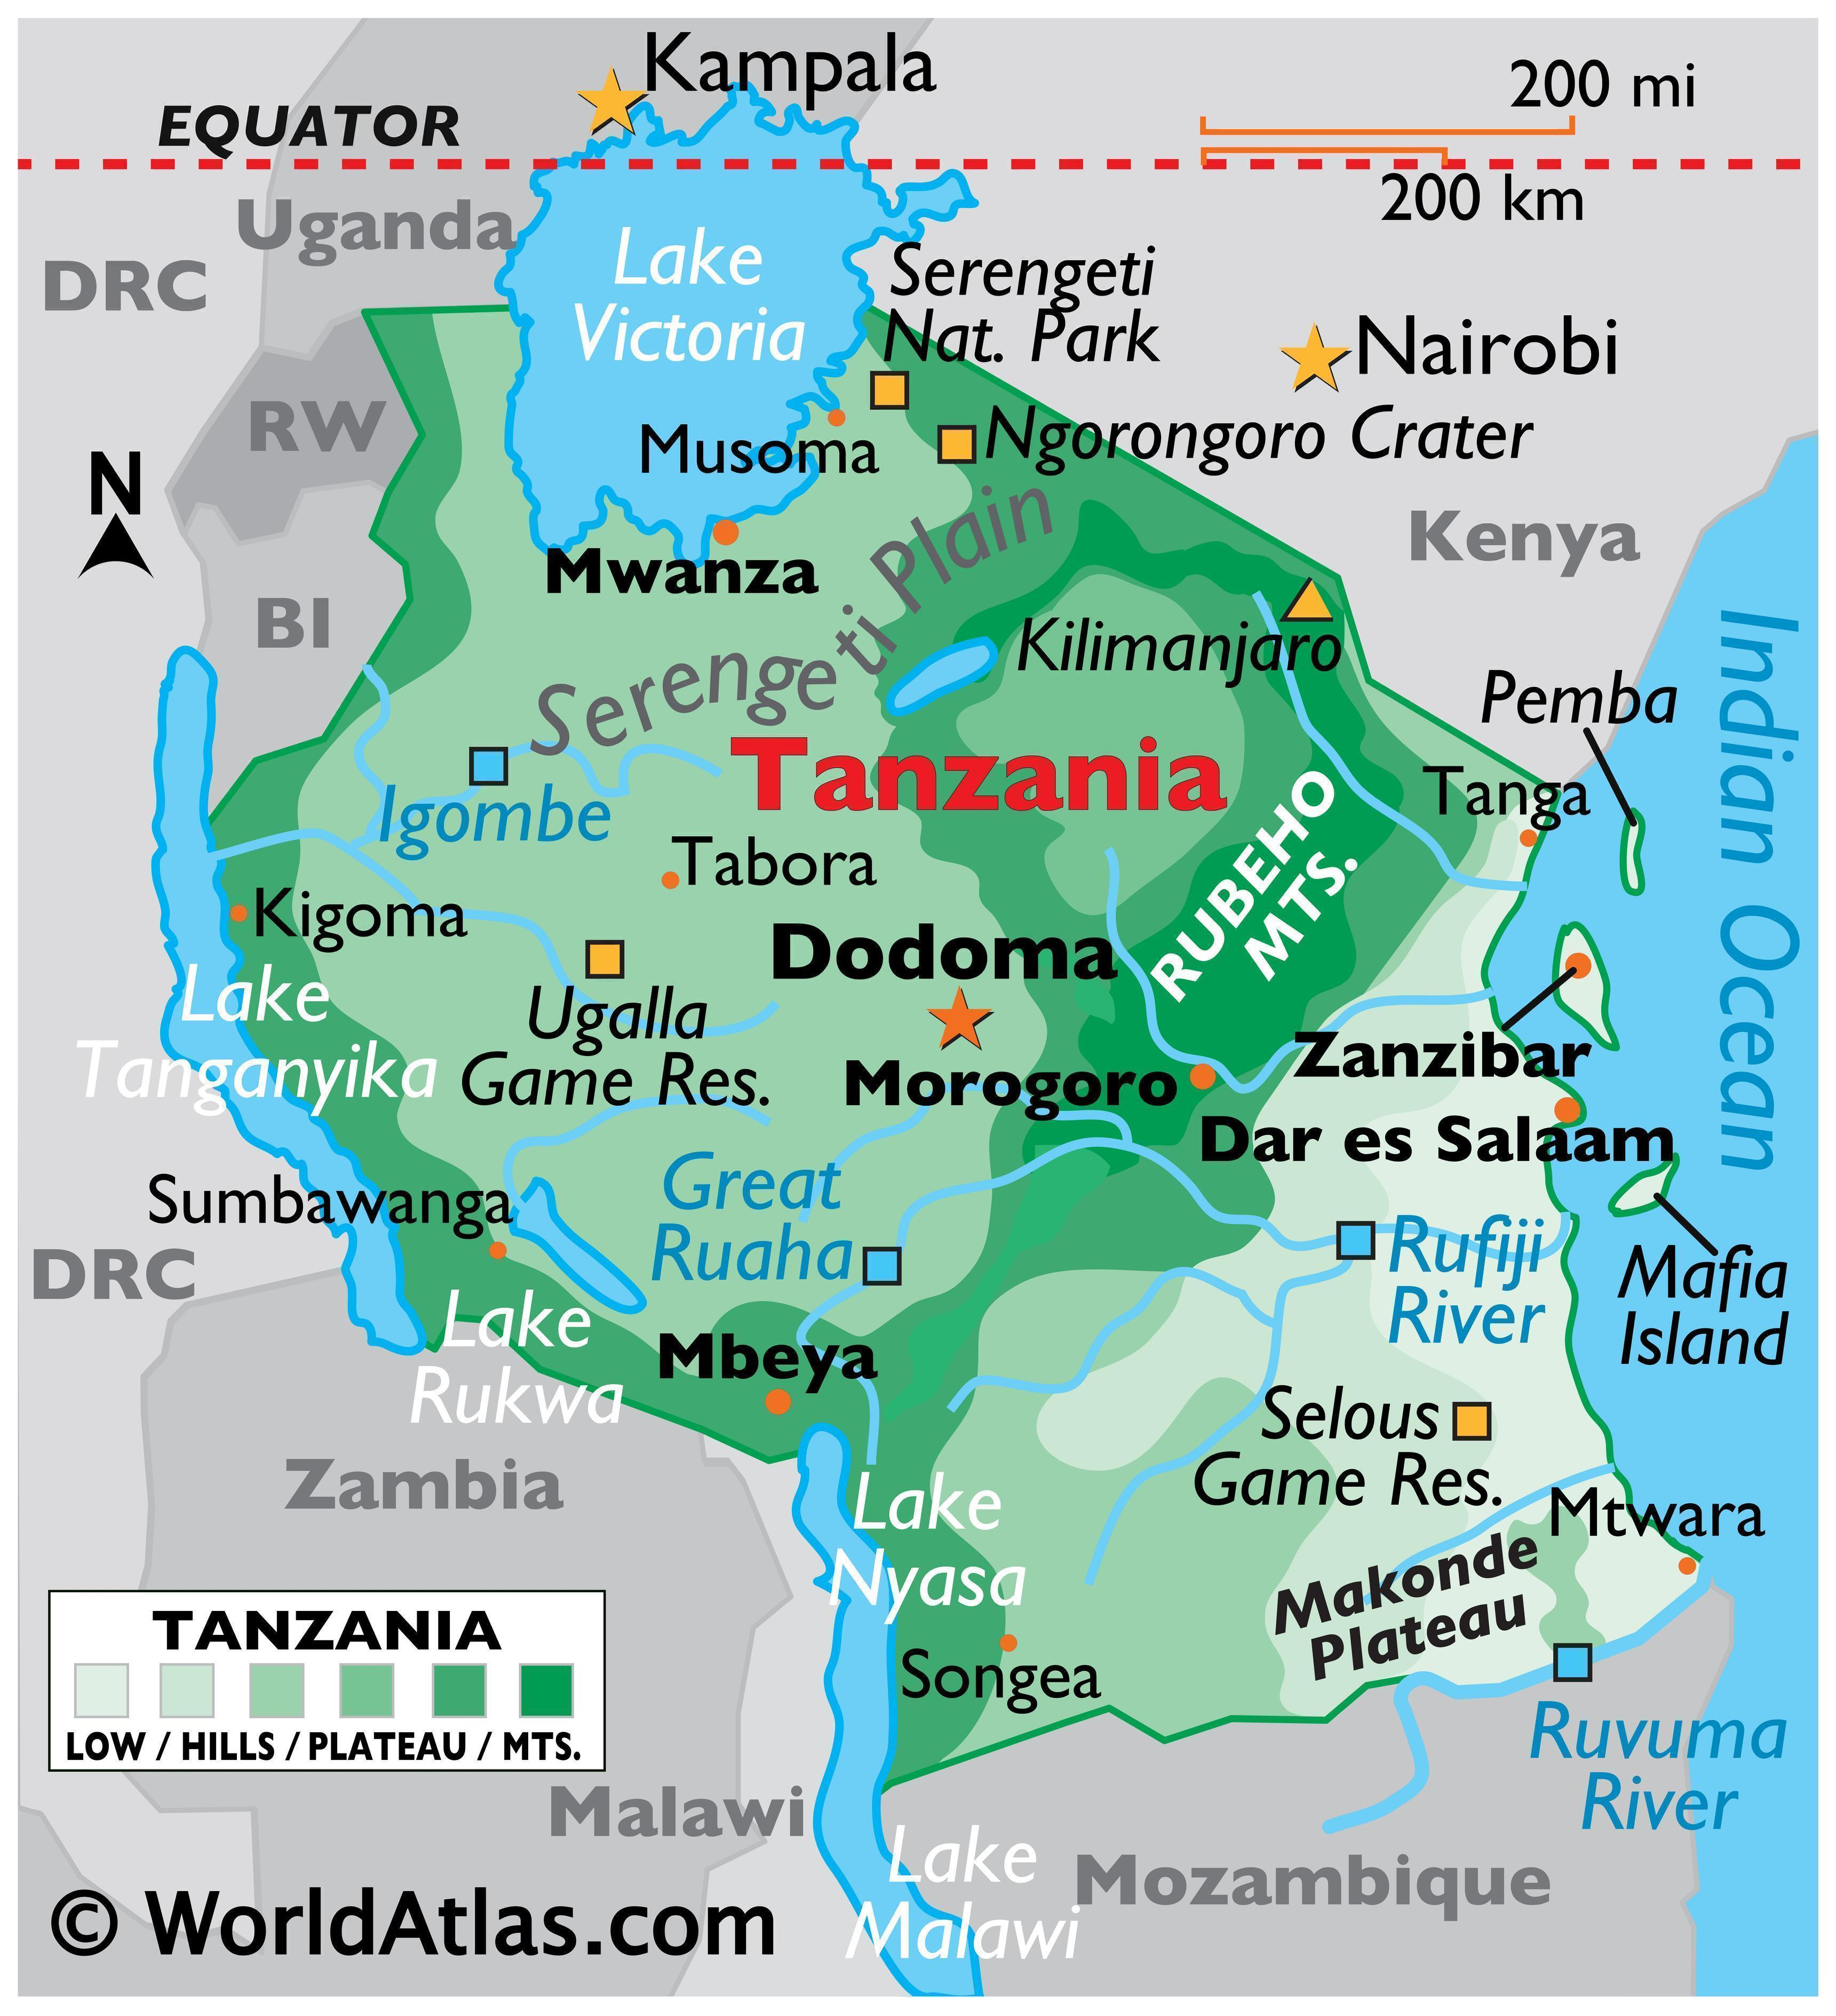 Physical Map of Tanzania with state boundaries, and major physical features like mountain ranges, rivers, lakes, national parks, etc.